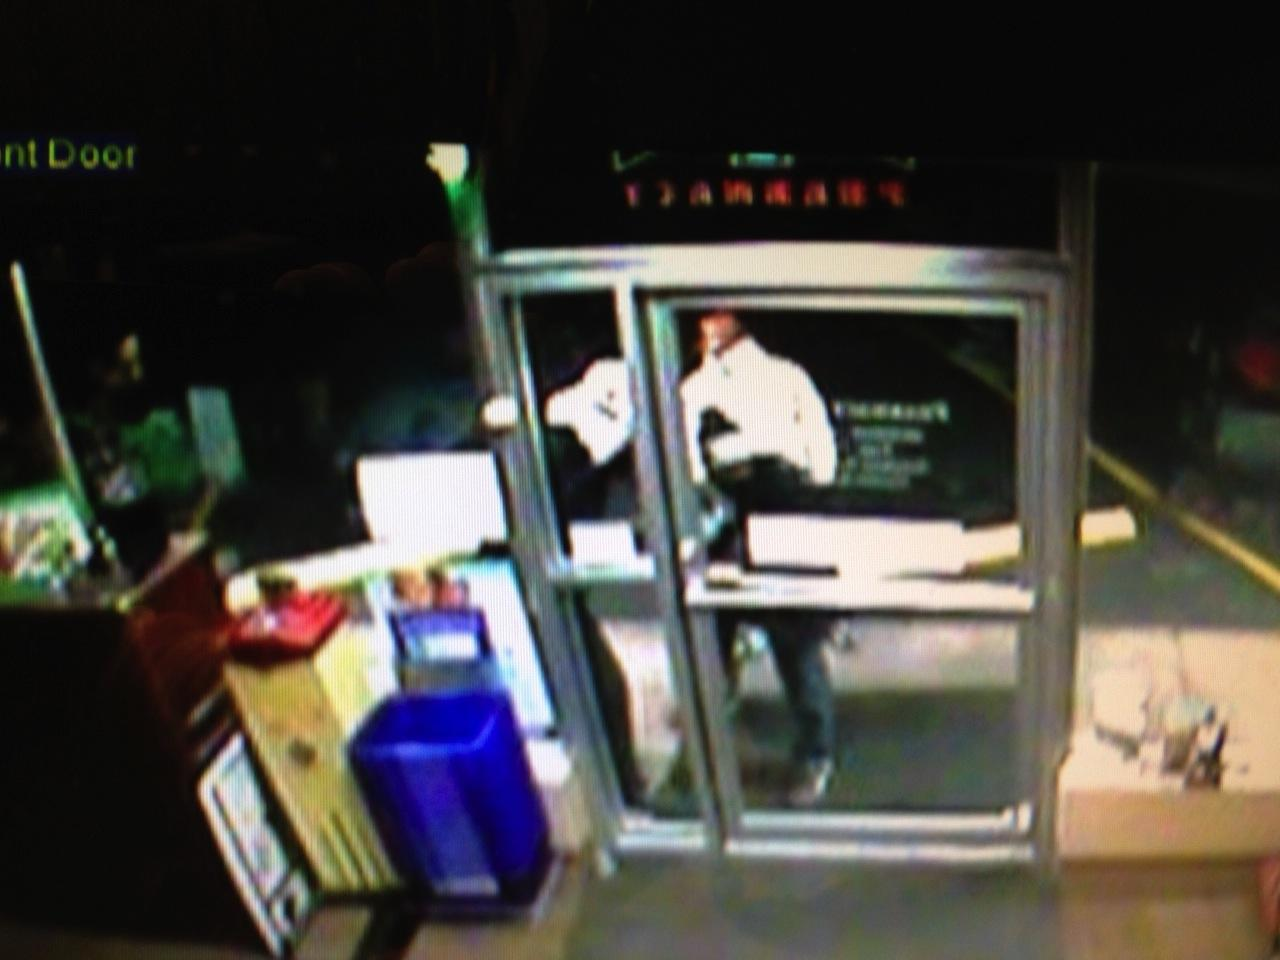 Stapley Pharmacy, St. George, Utah , June 1, 2013 | Surveillance Camera, Contact St. George Police Department with info